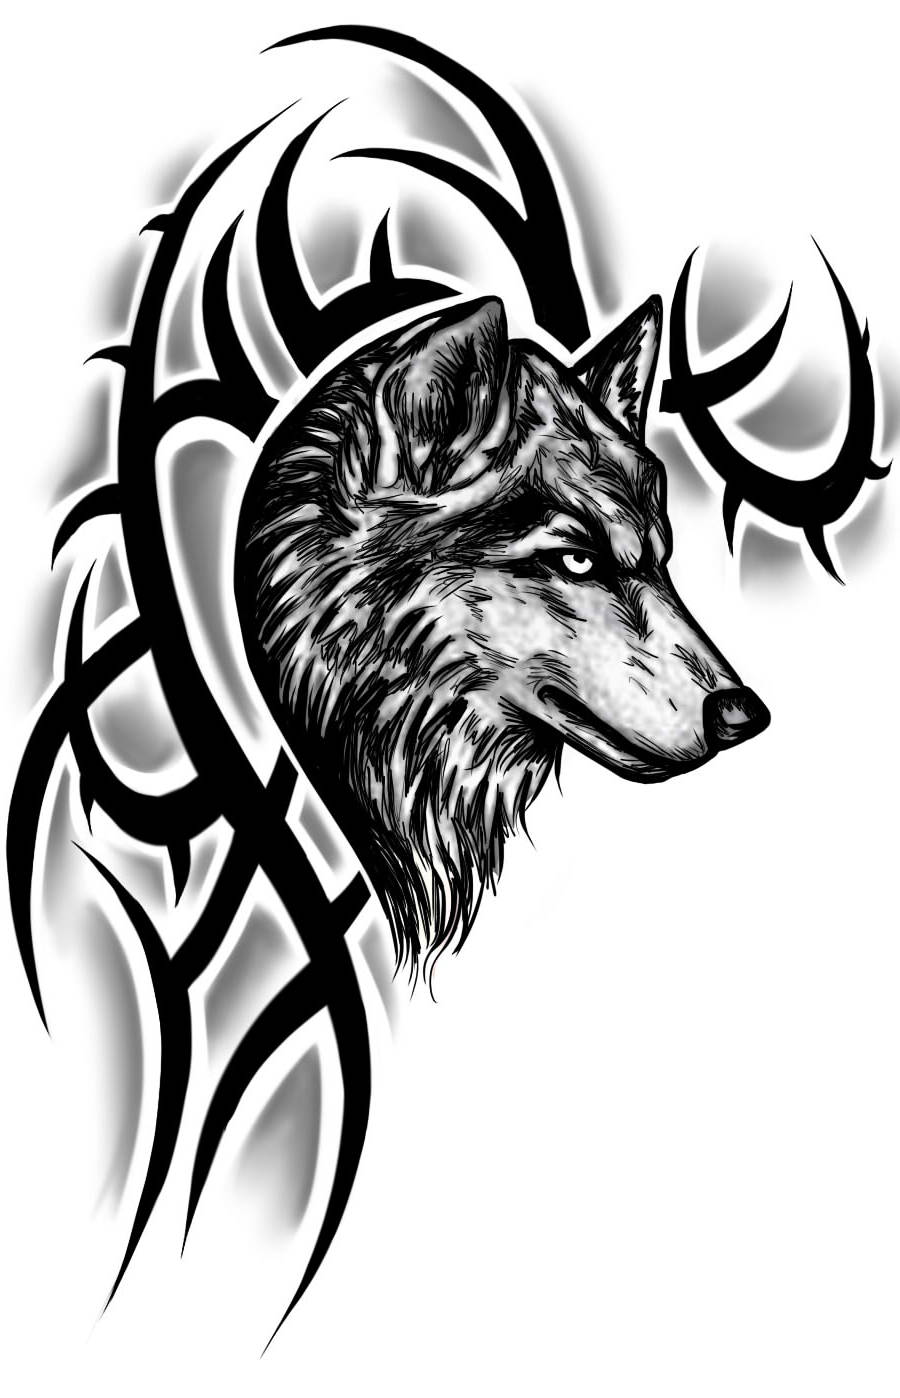 18 howling wolf tattoo designs images and photos for Tribal wolf tattoo